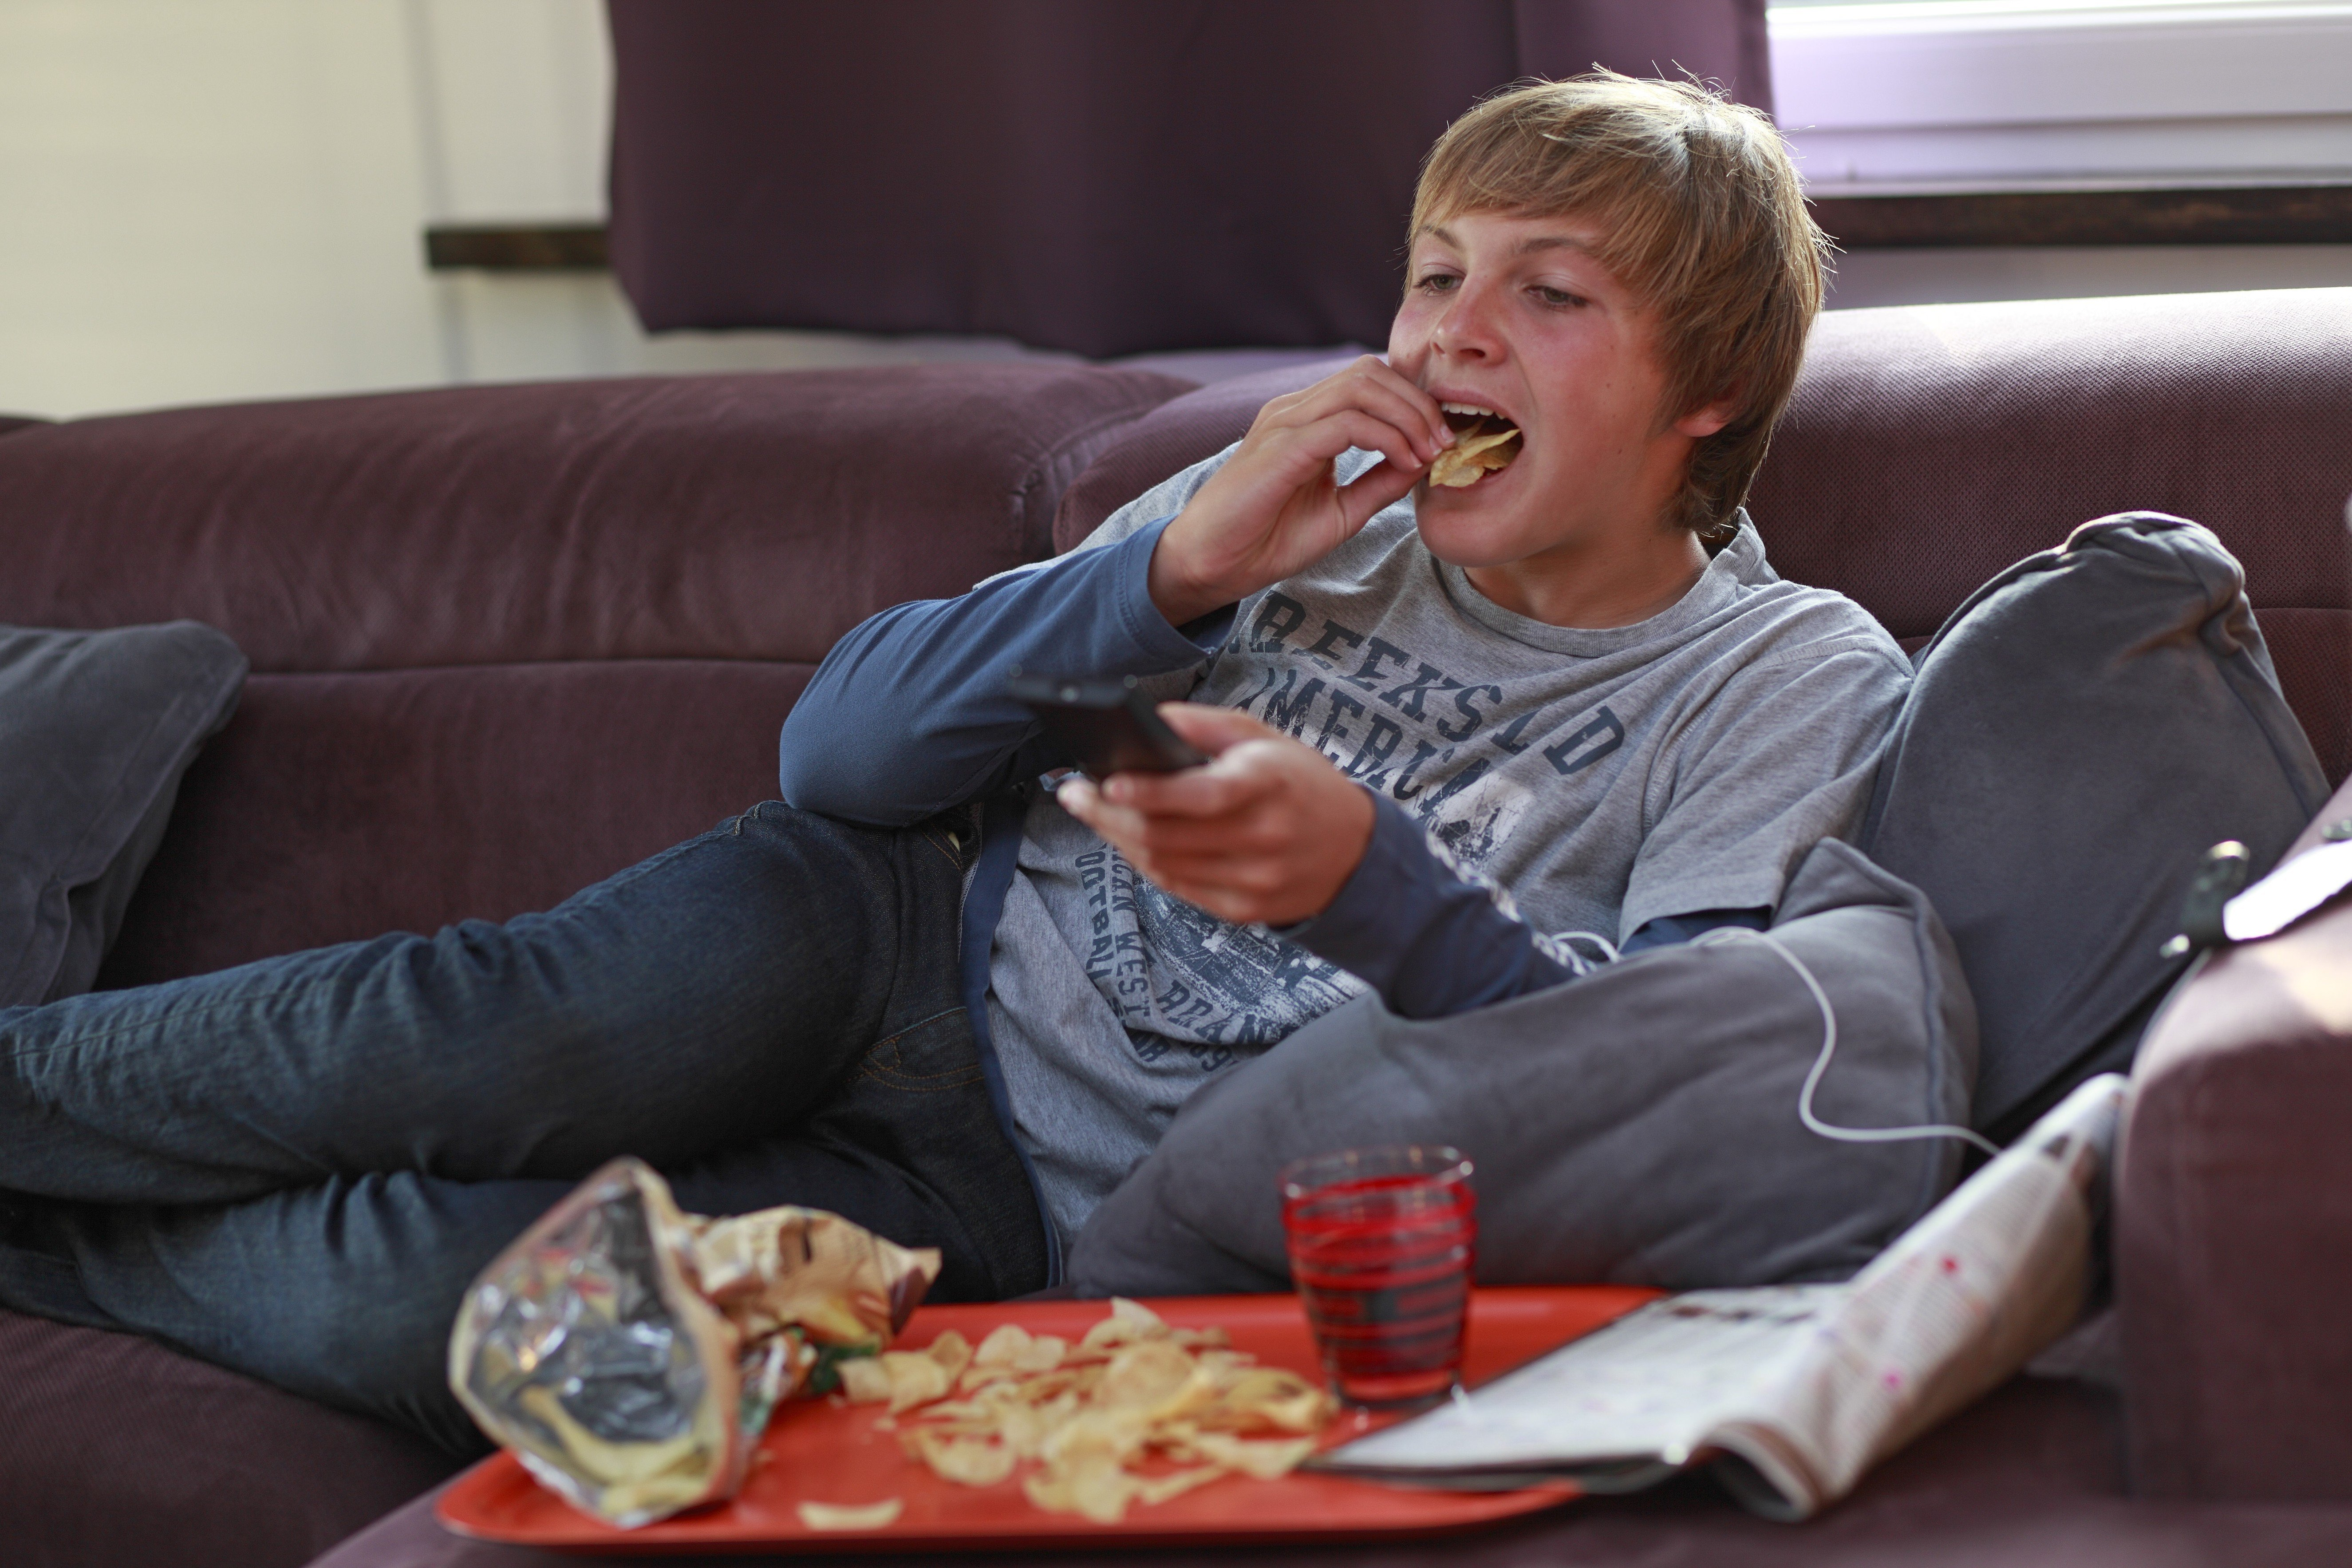 Teens Are Likely To Eat More Junk Food After Watching TV Ads